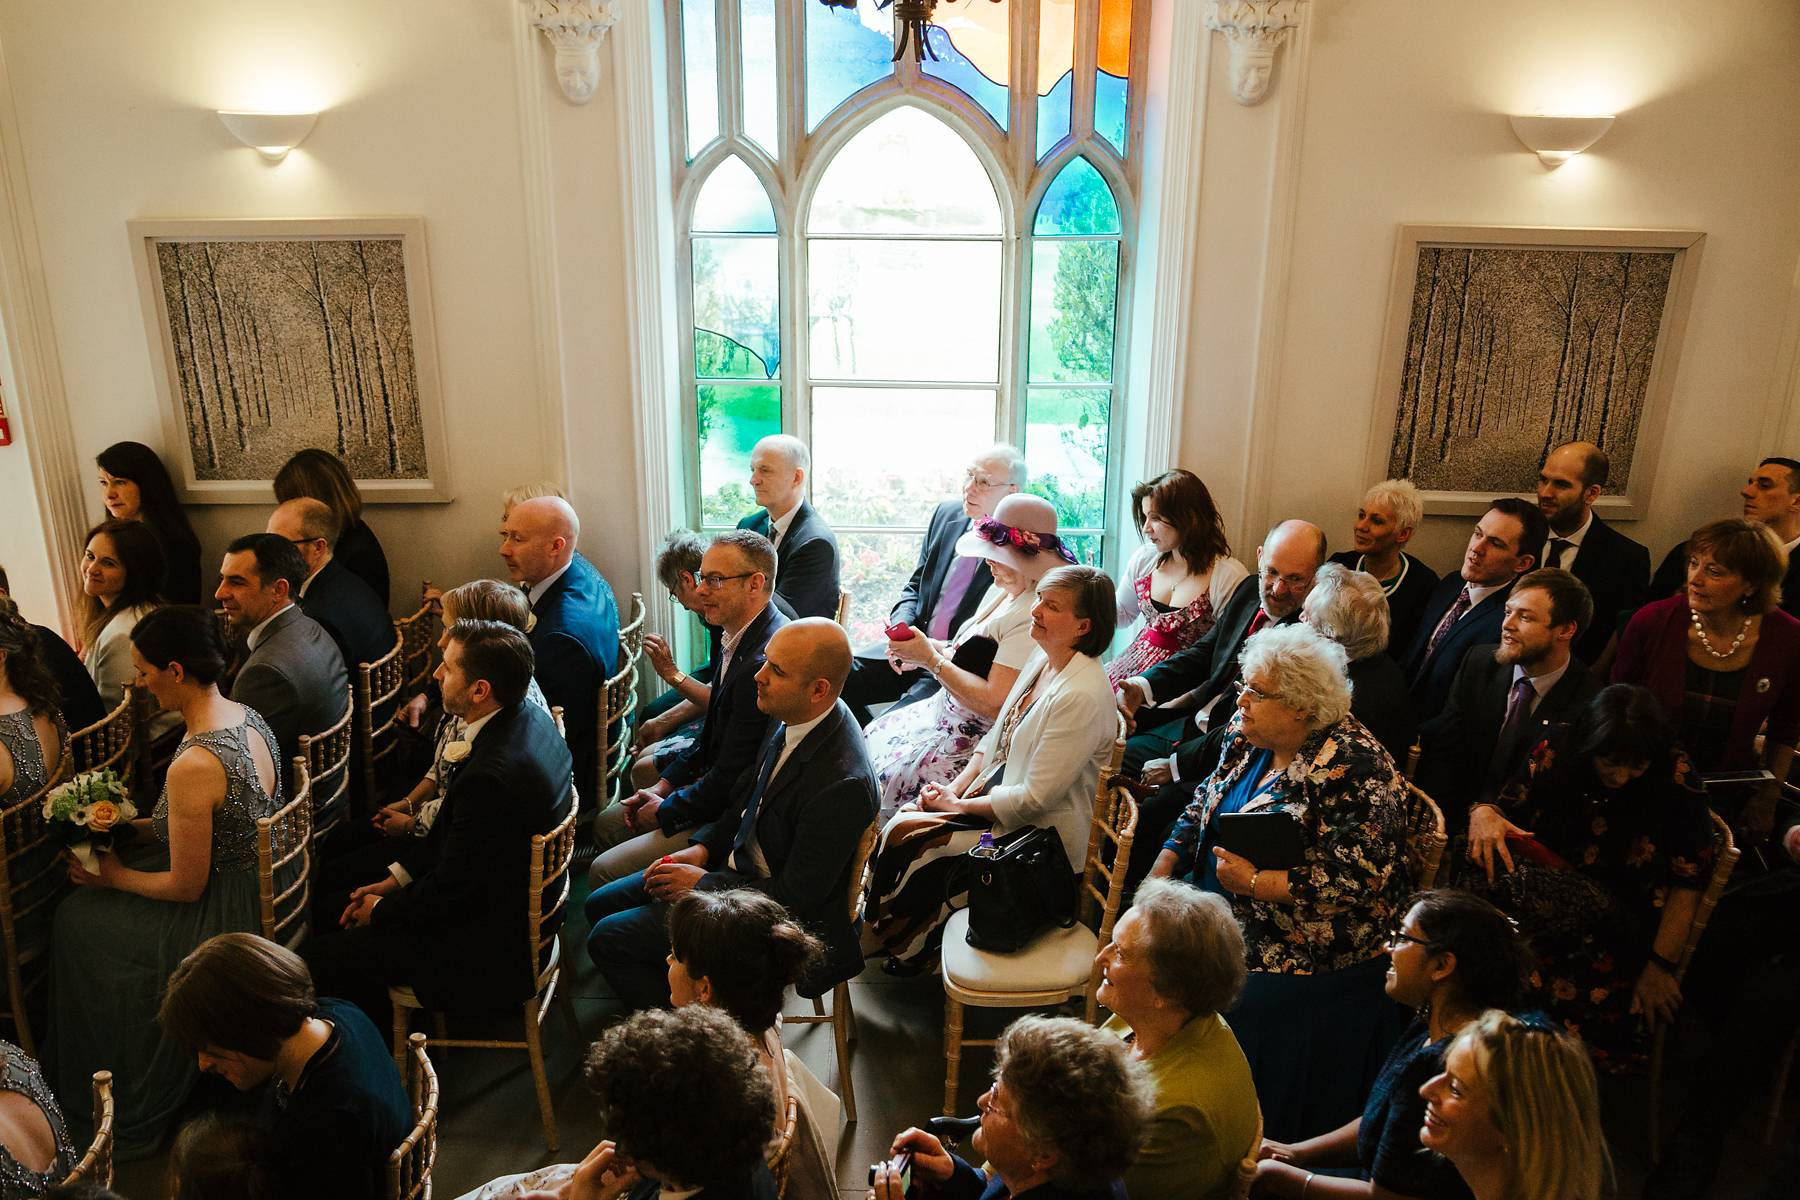 Wedding guests seating at Missenden Abbey